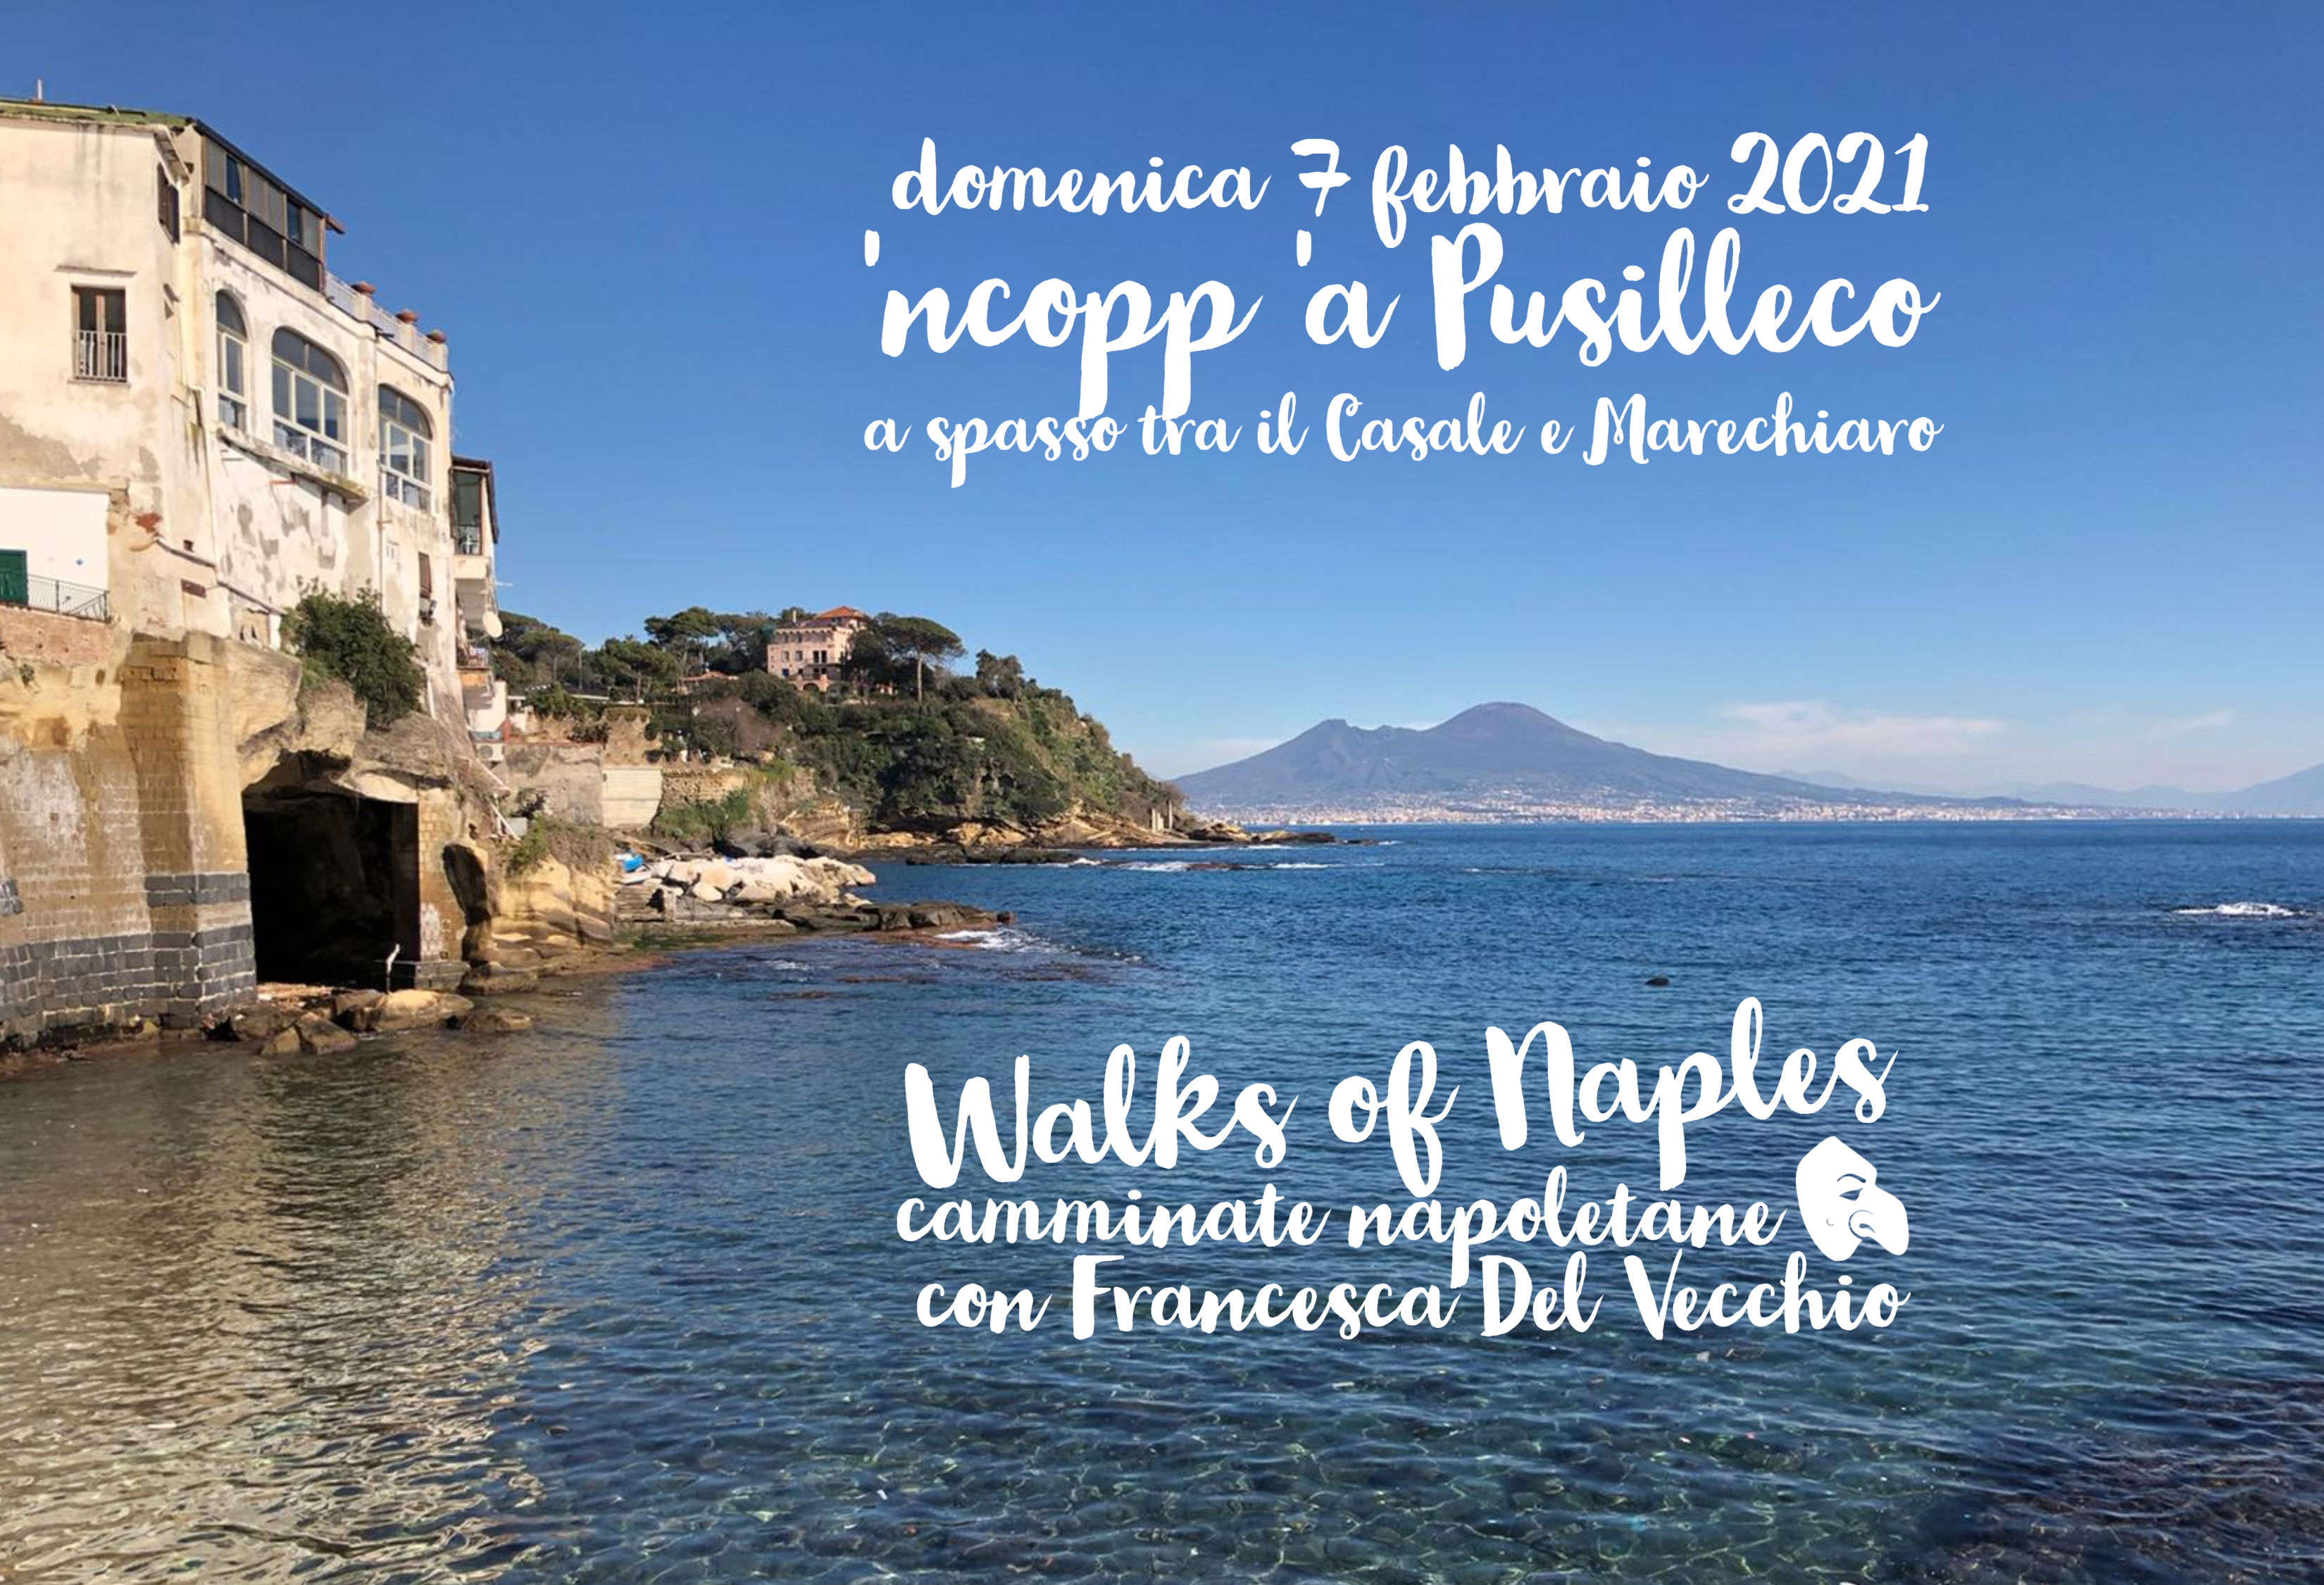 Walks of Naples_ 'ncopp a Pusilleco